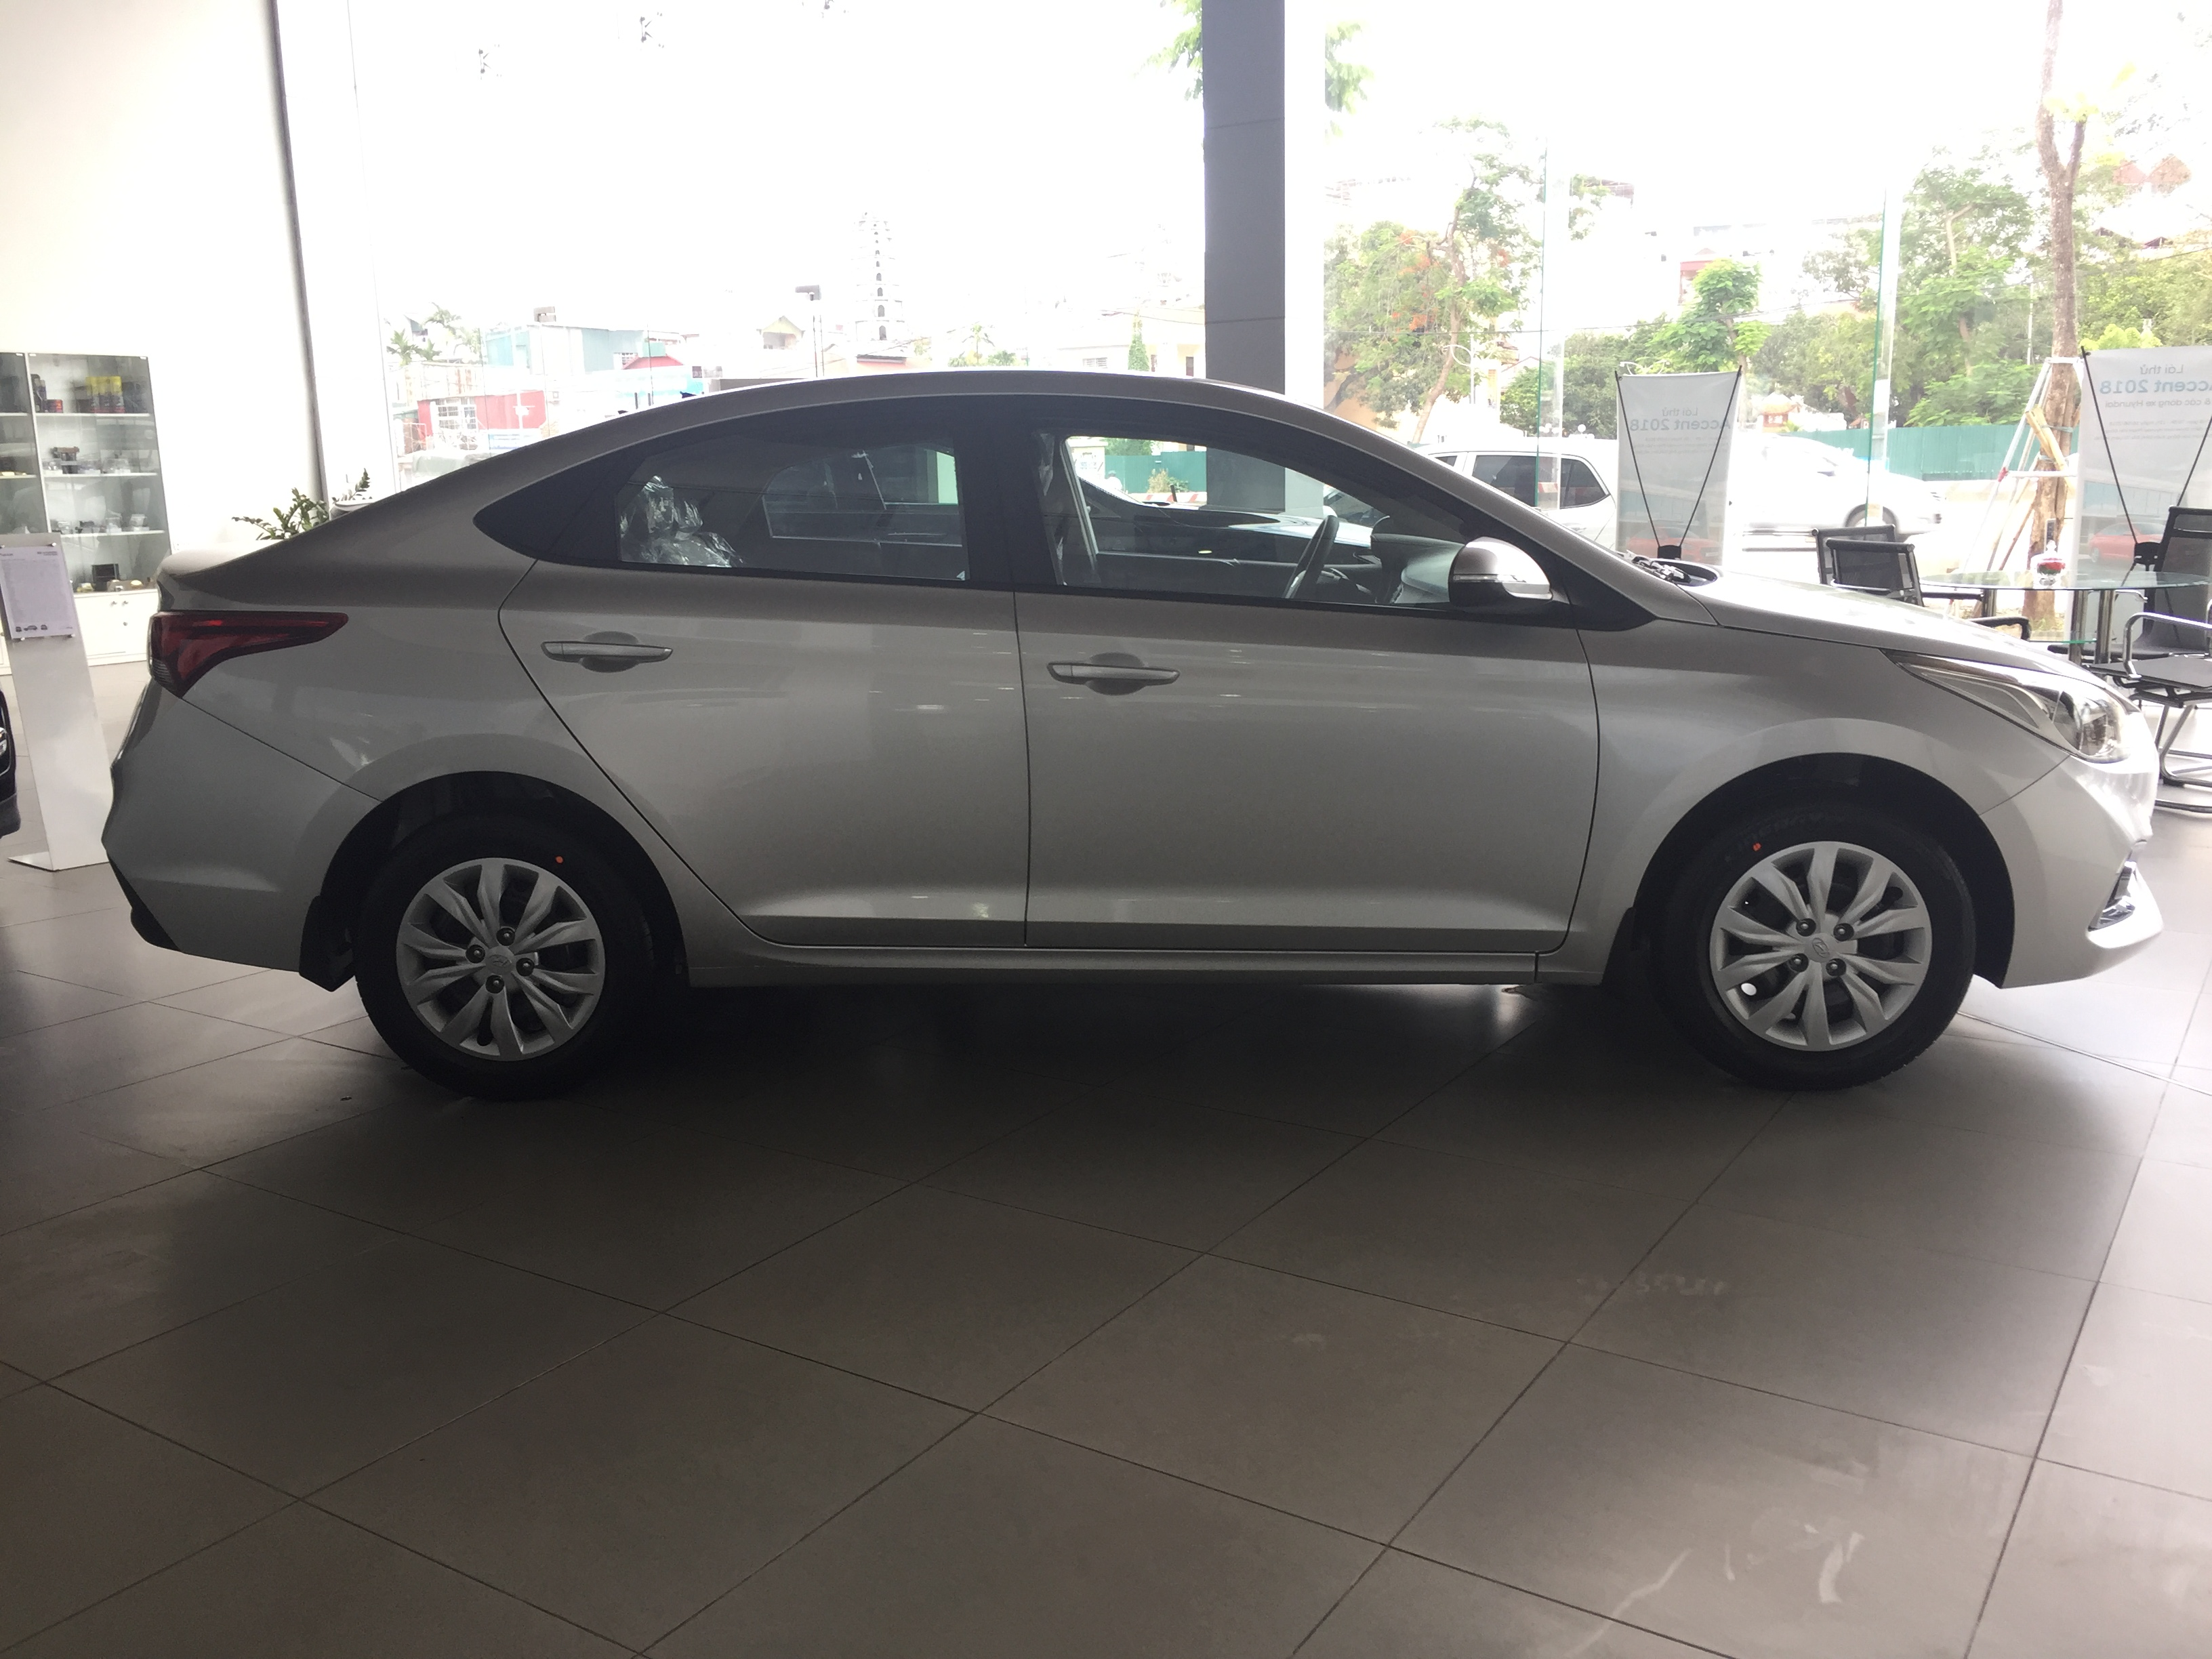 hyundai accent 1.4 mt base tieu chuan (3)